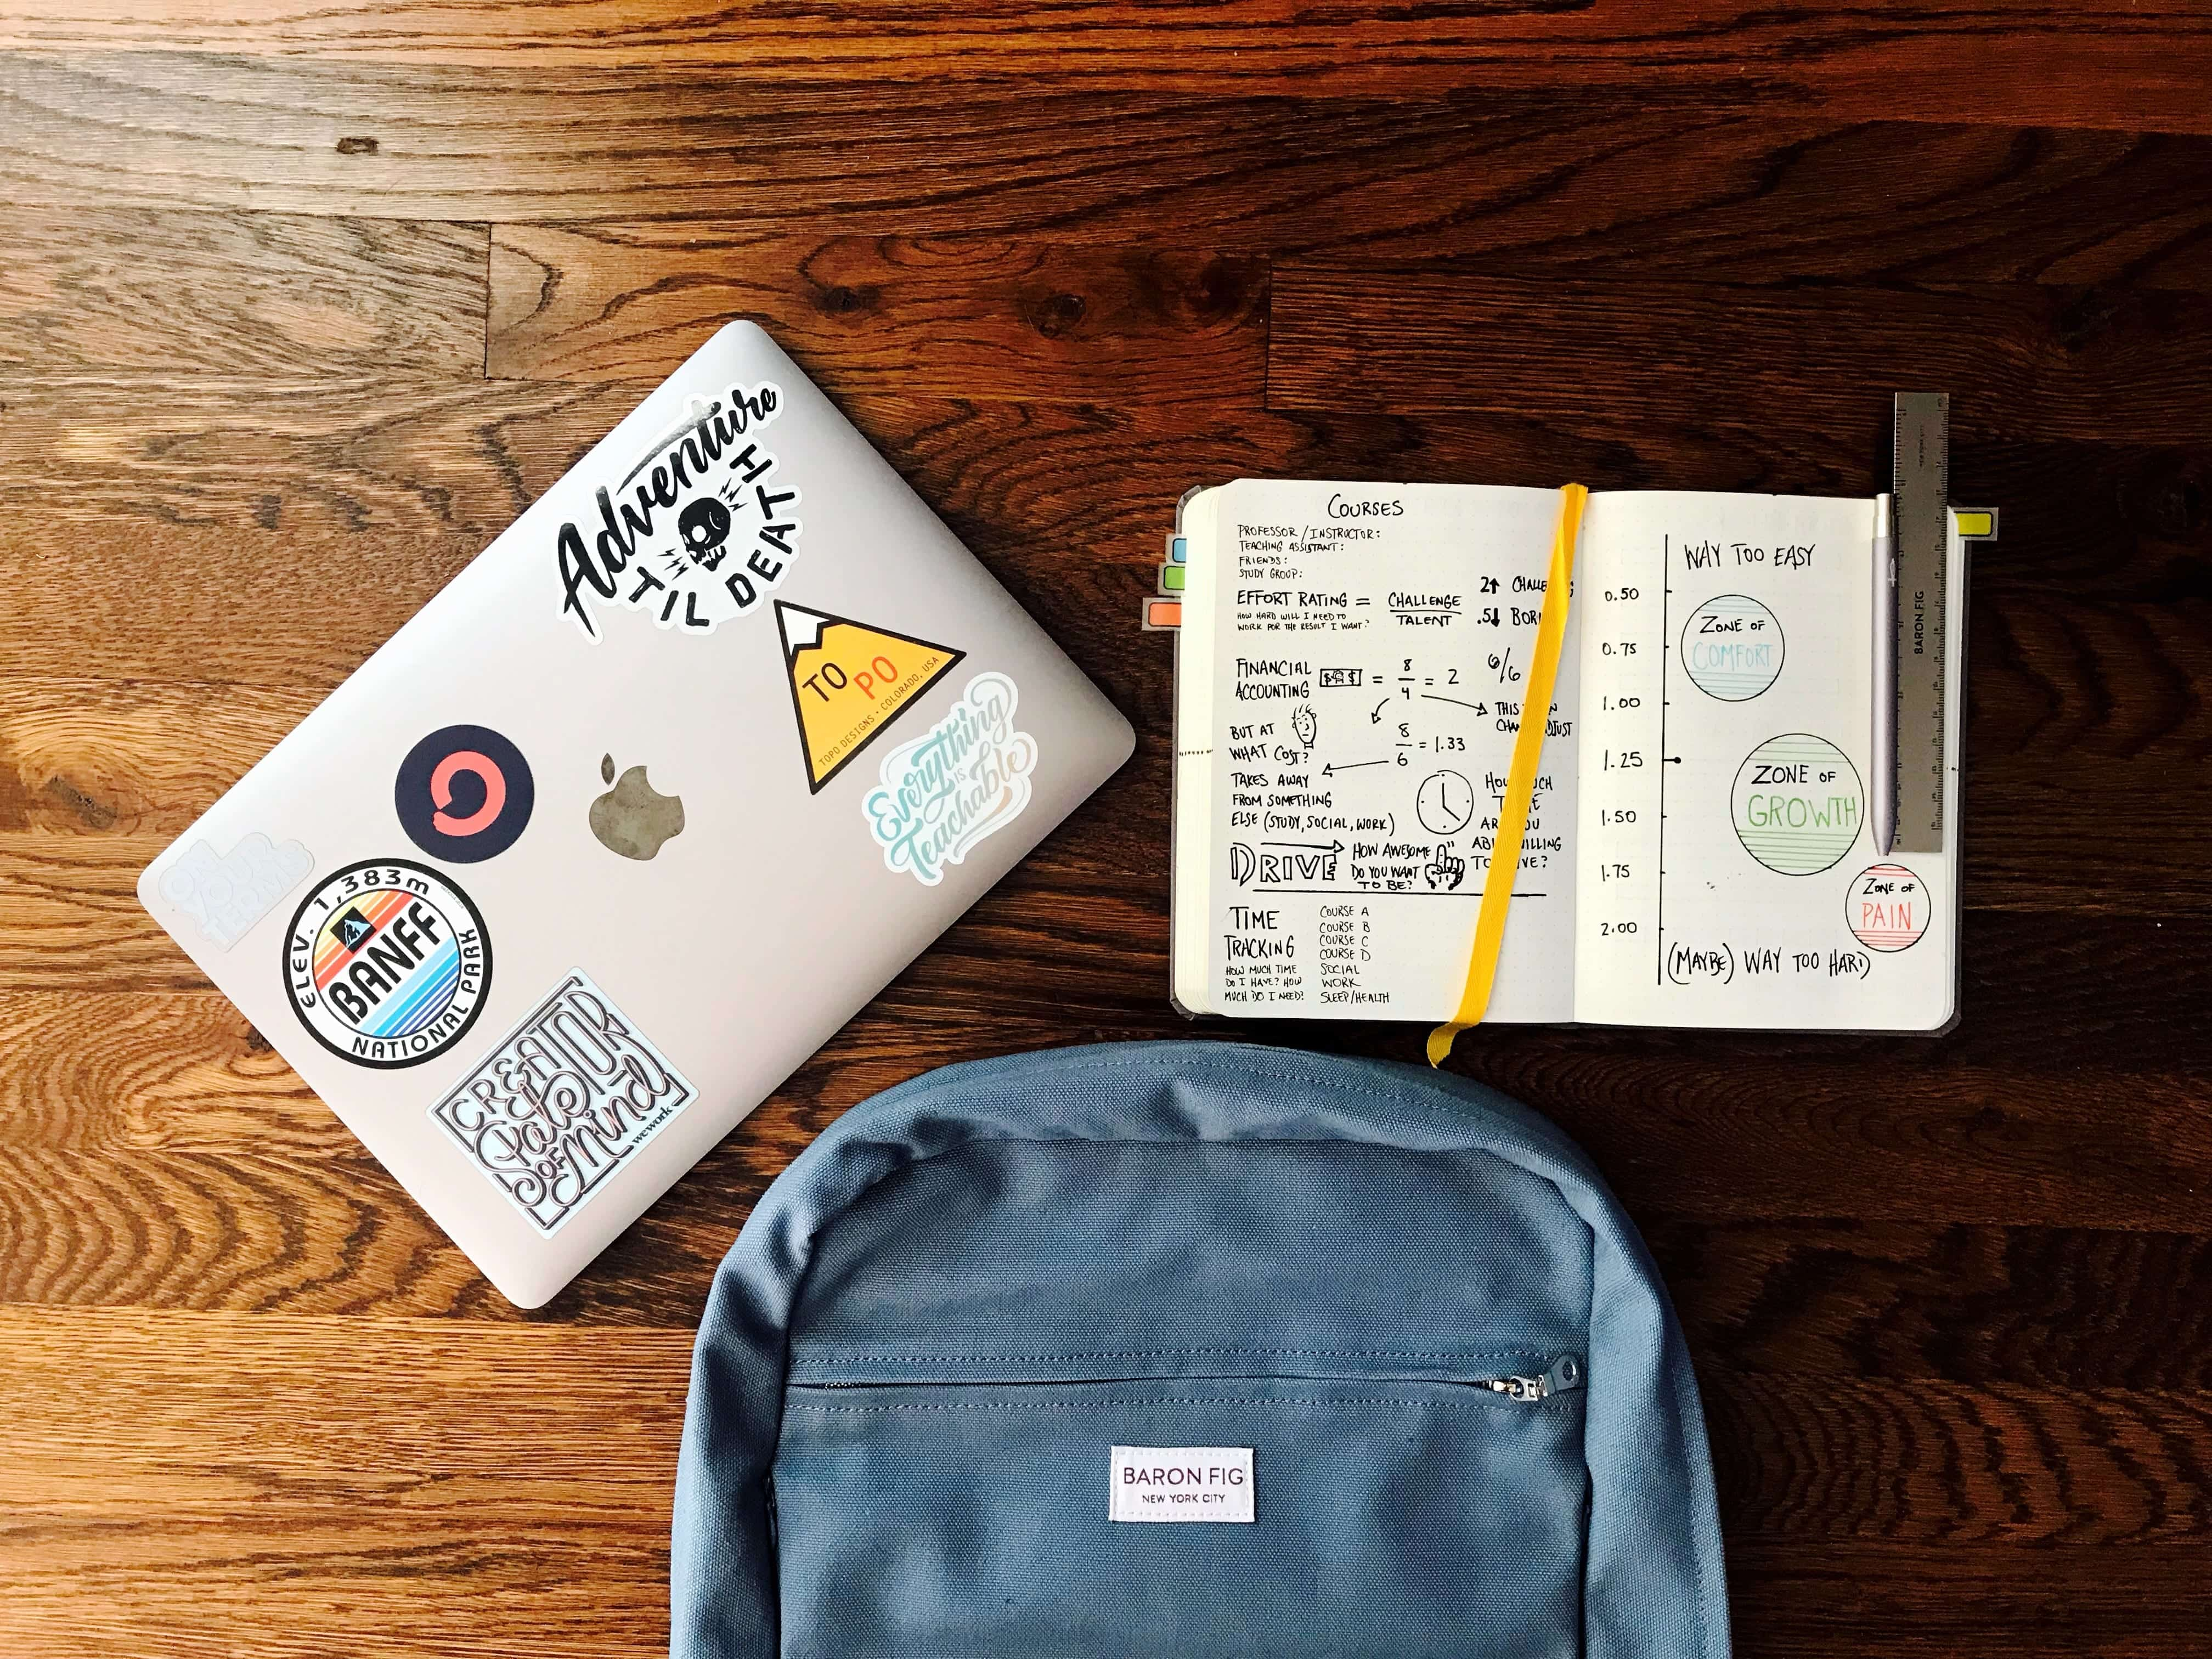 Laptop with stickers on it, blue backpack, and notebook on a brown woodgrain desk; image by Matt Ragland, via Unsplash.com.